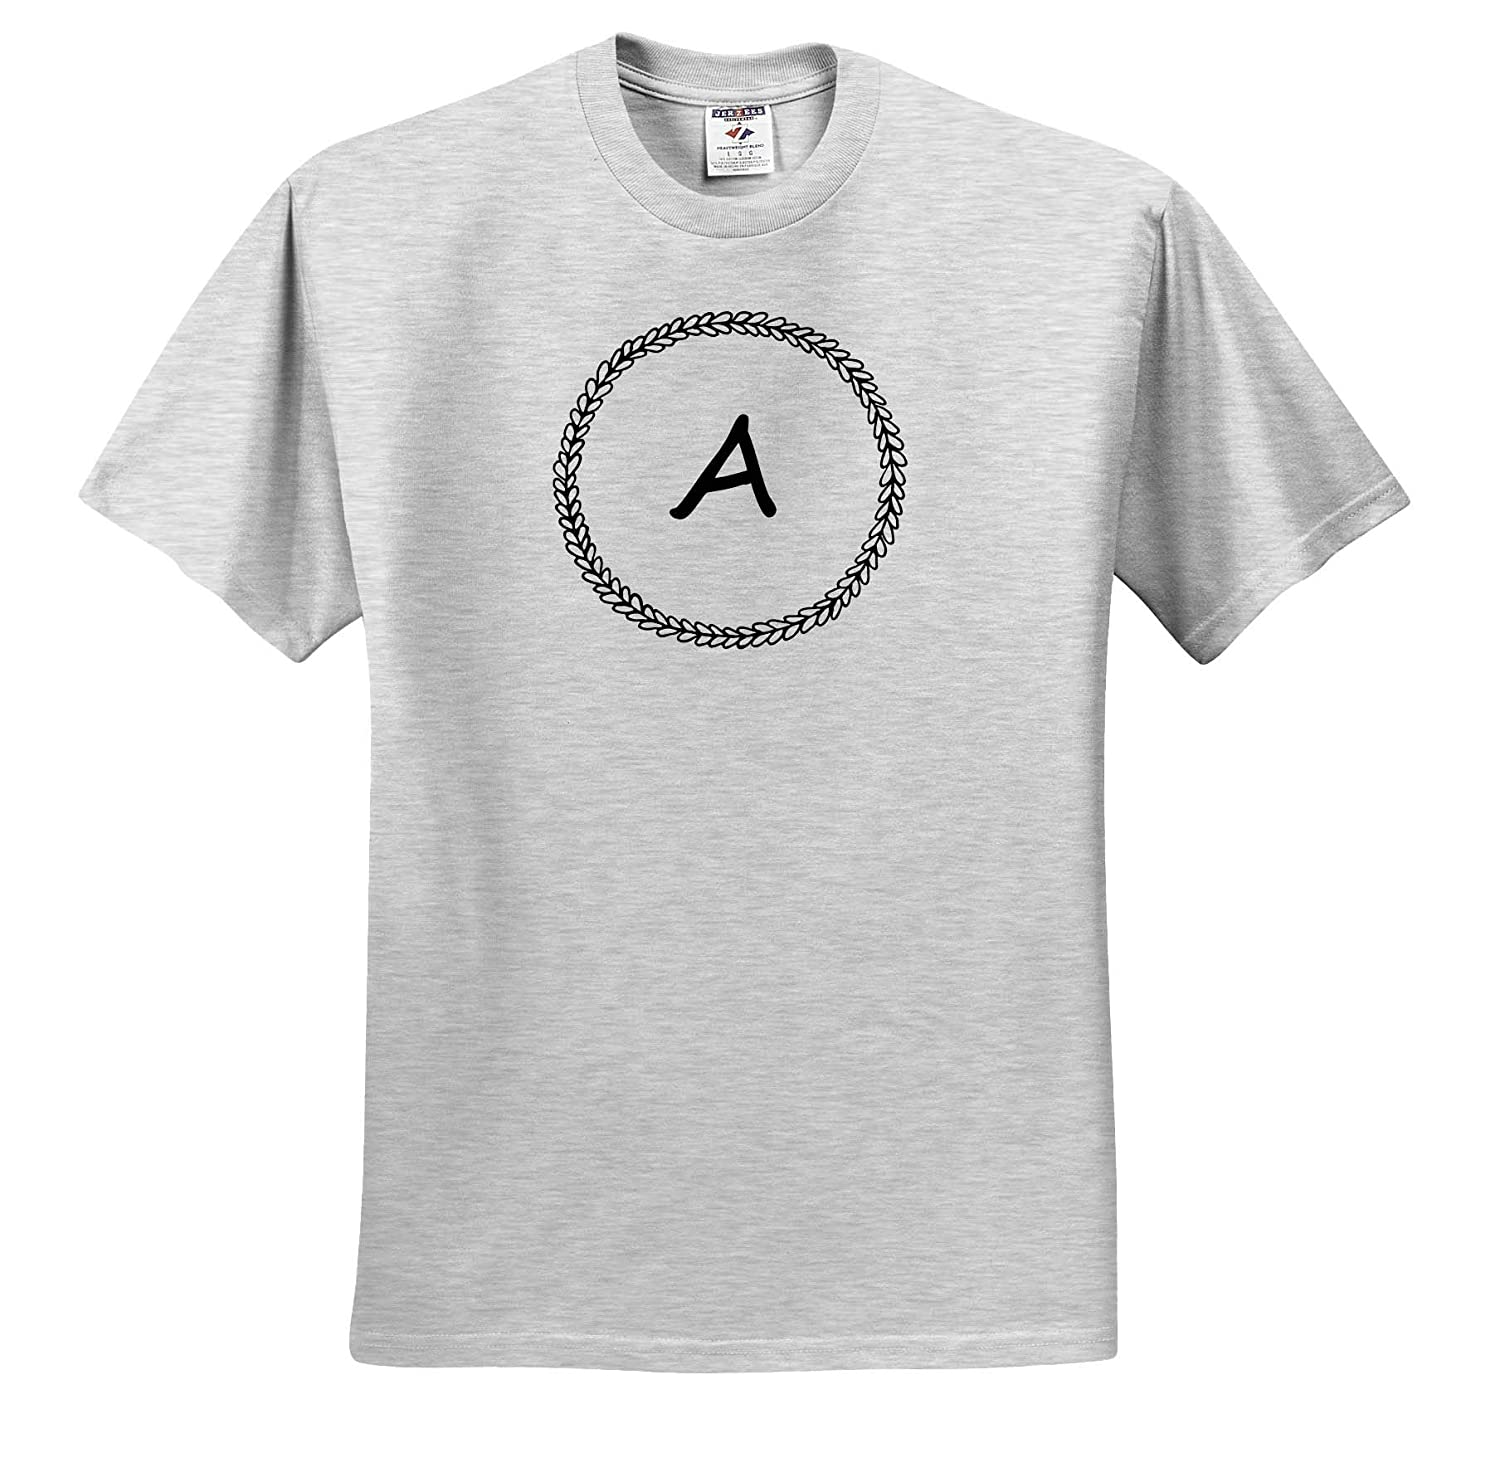 T-Shirts 3dRose Merchant-Quote Image of Doodly A Monogram